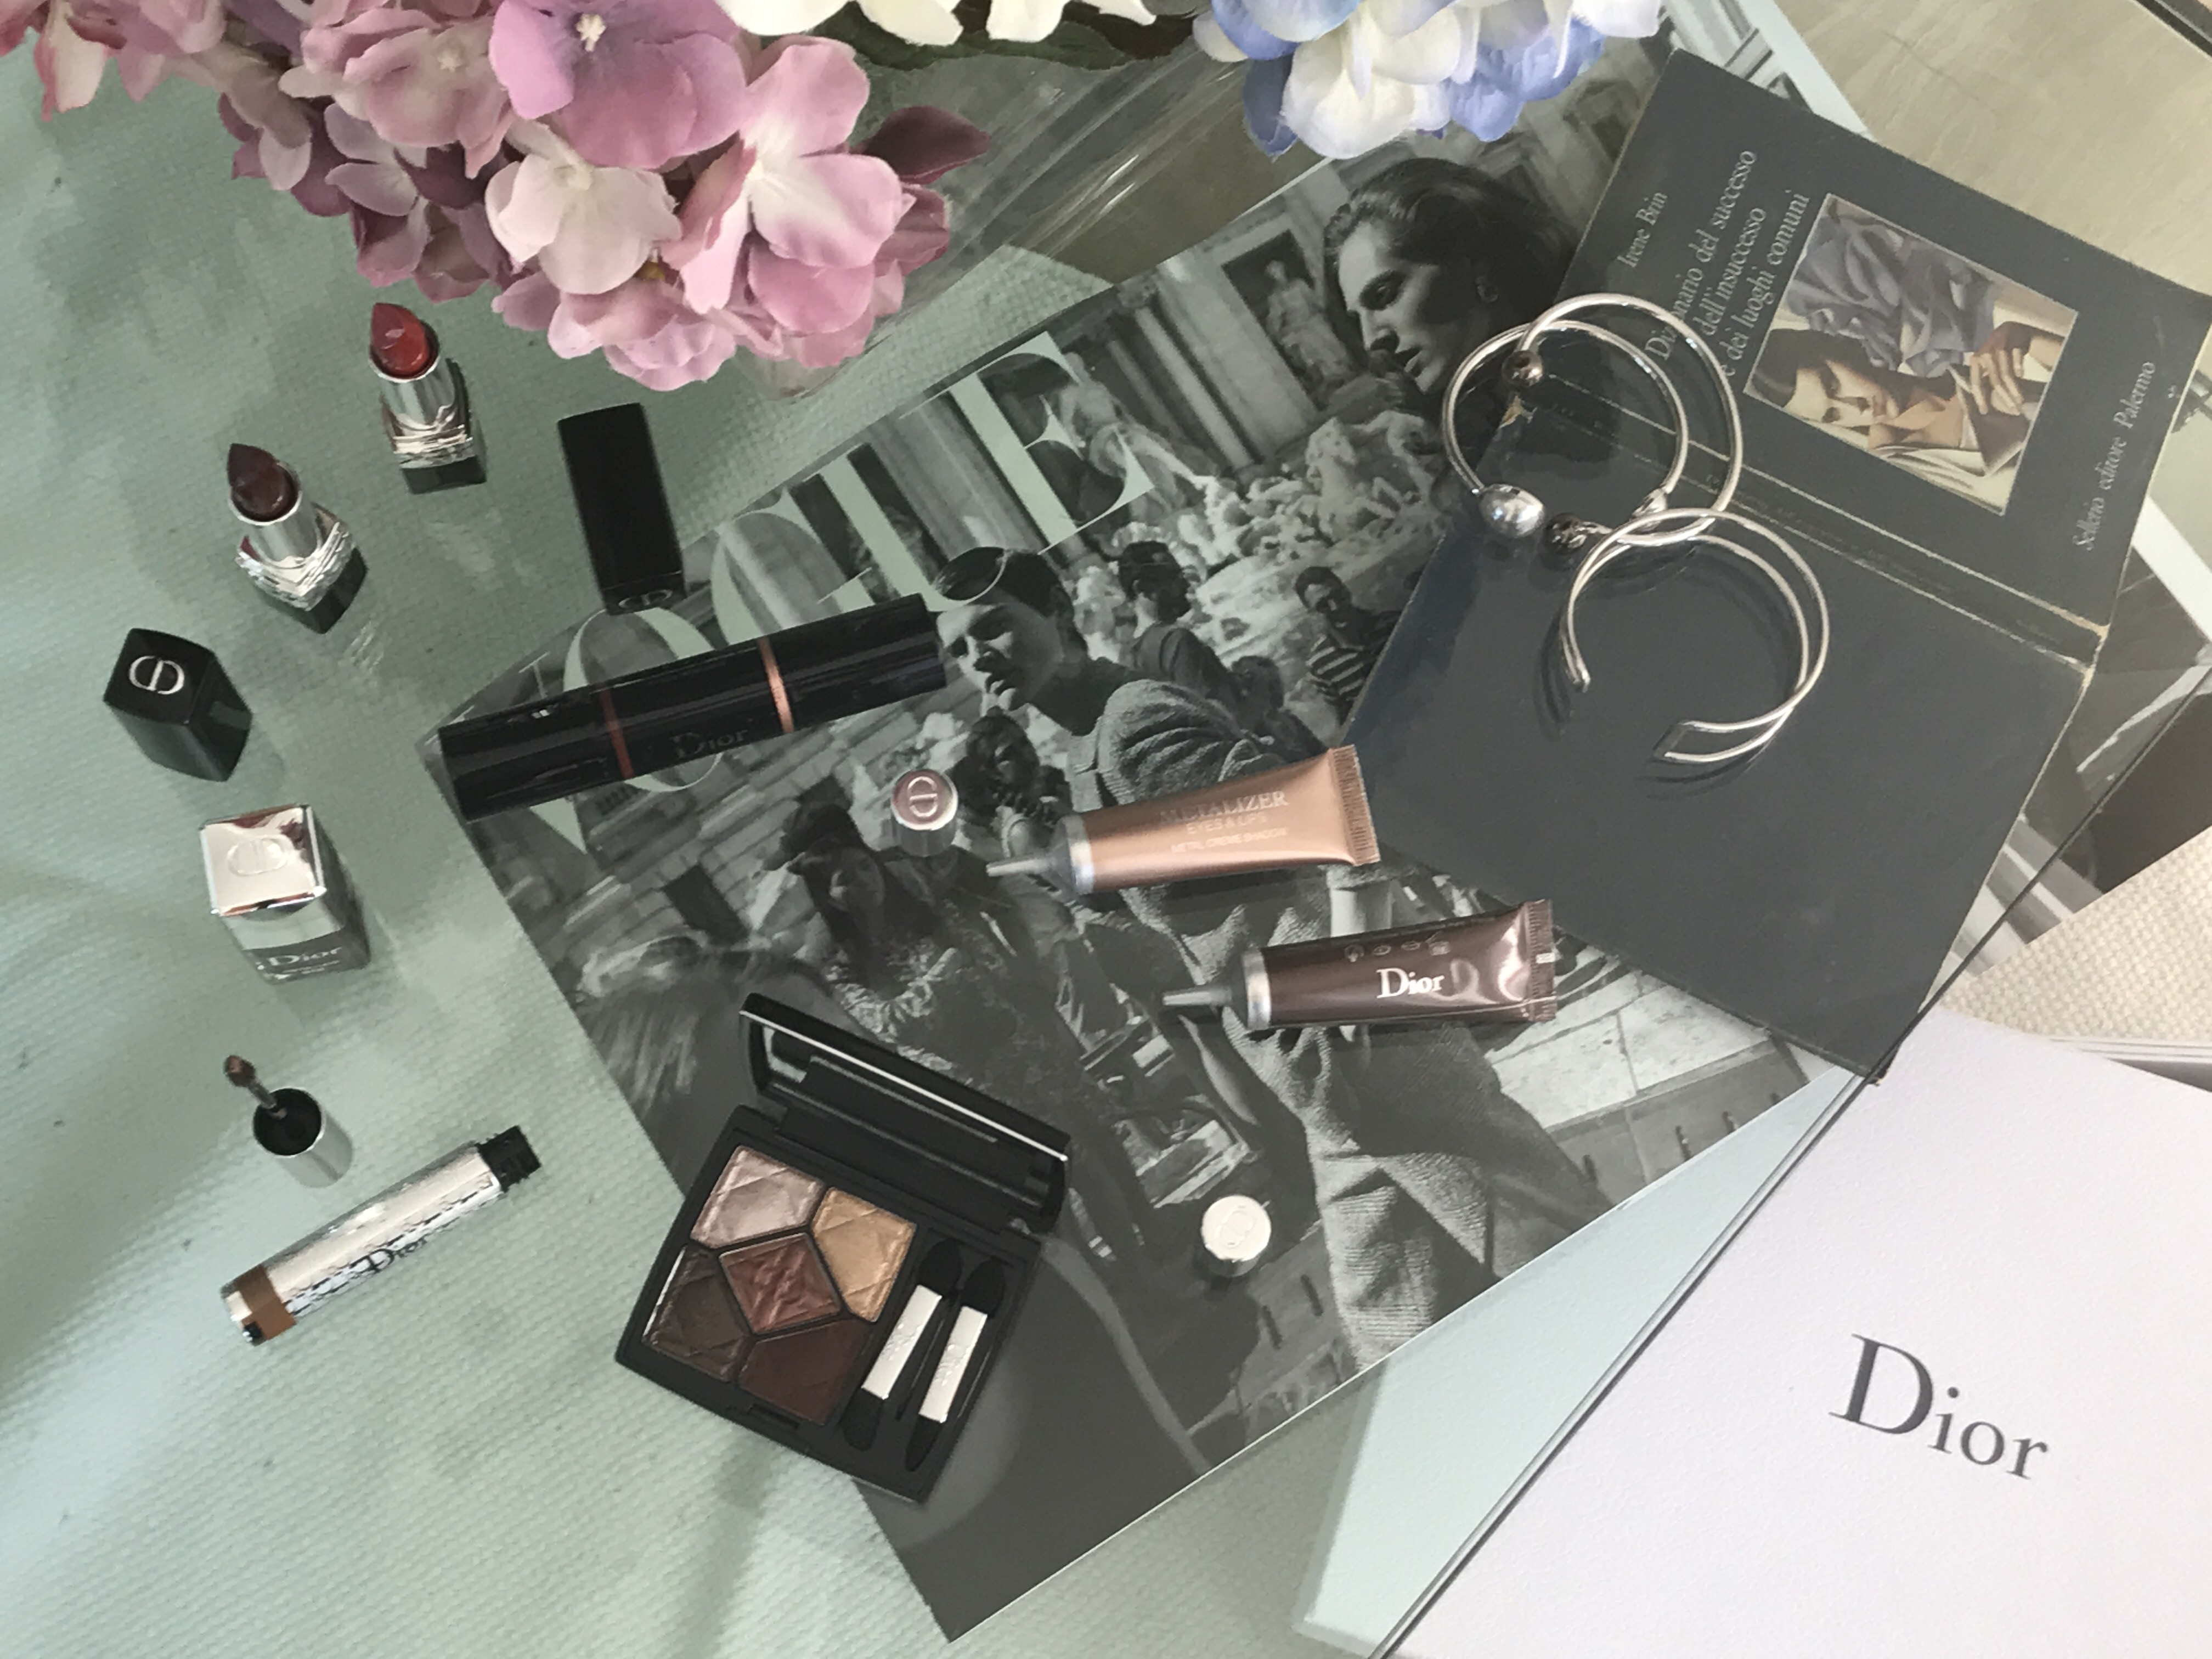 Trucco autunno 2017, theladycracy.it, elisa bellino, fashion blog italia, fashion blogger italiane 2017, blogger moda 2017, blog moda 2017, dior metallics autunno 2017, dior makeup collection 2017, dior fall 2017, dior metallics recensioni, novità dior makeup autunno inverno 2017, come truccarsi autunno 2017, tendenze trucco autunno 2017